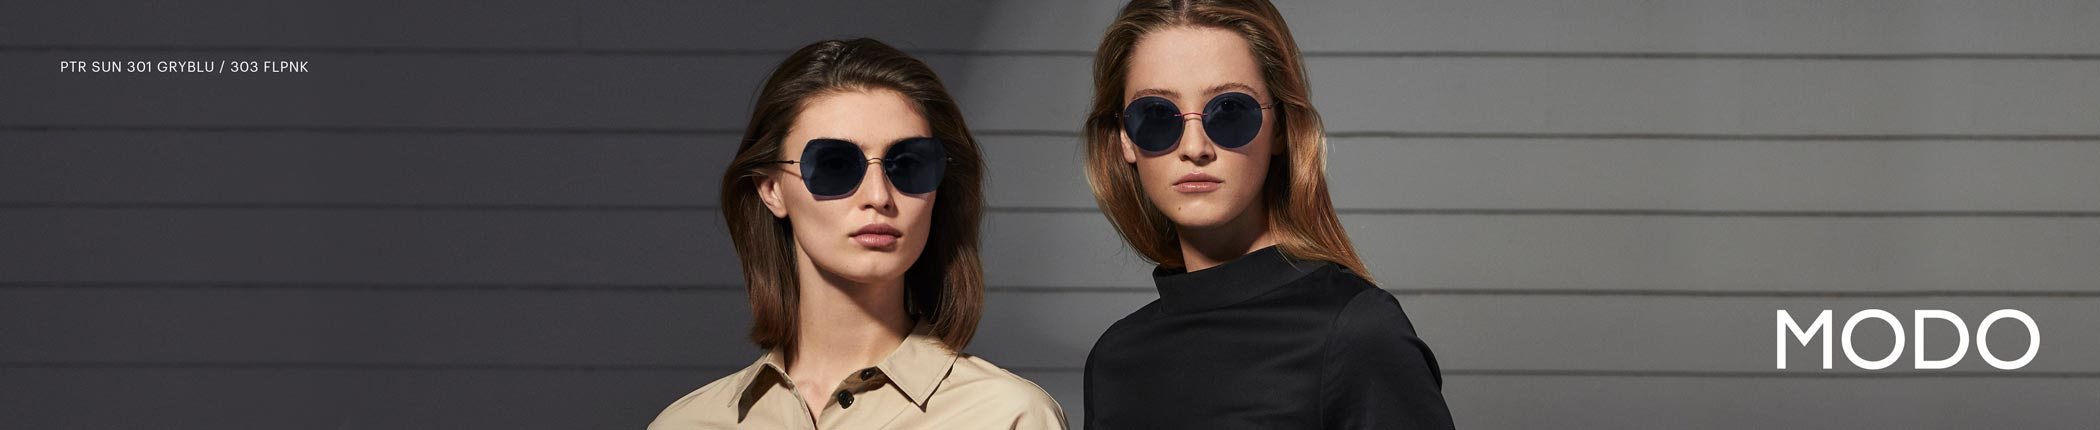 Shop Modo Sunglasses - featuring 301 and 303